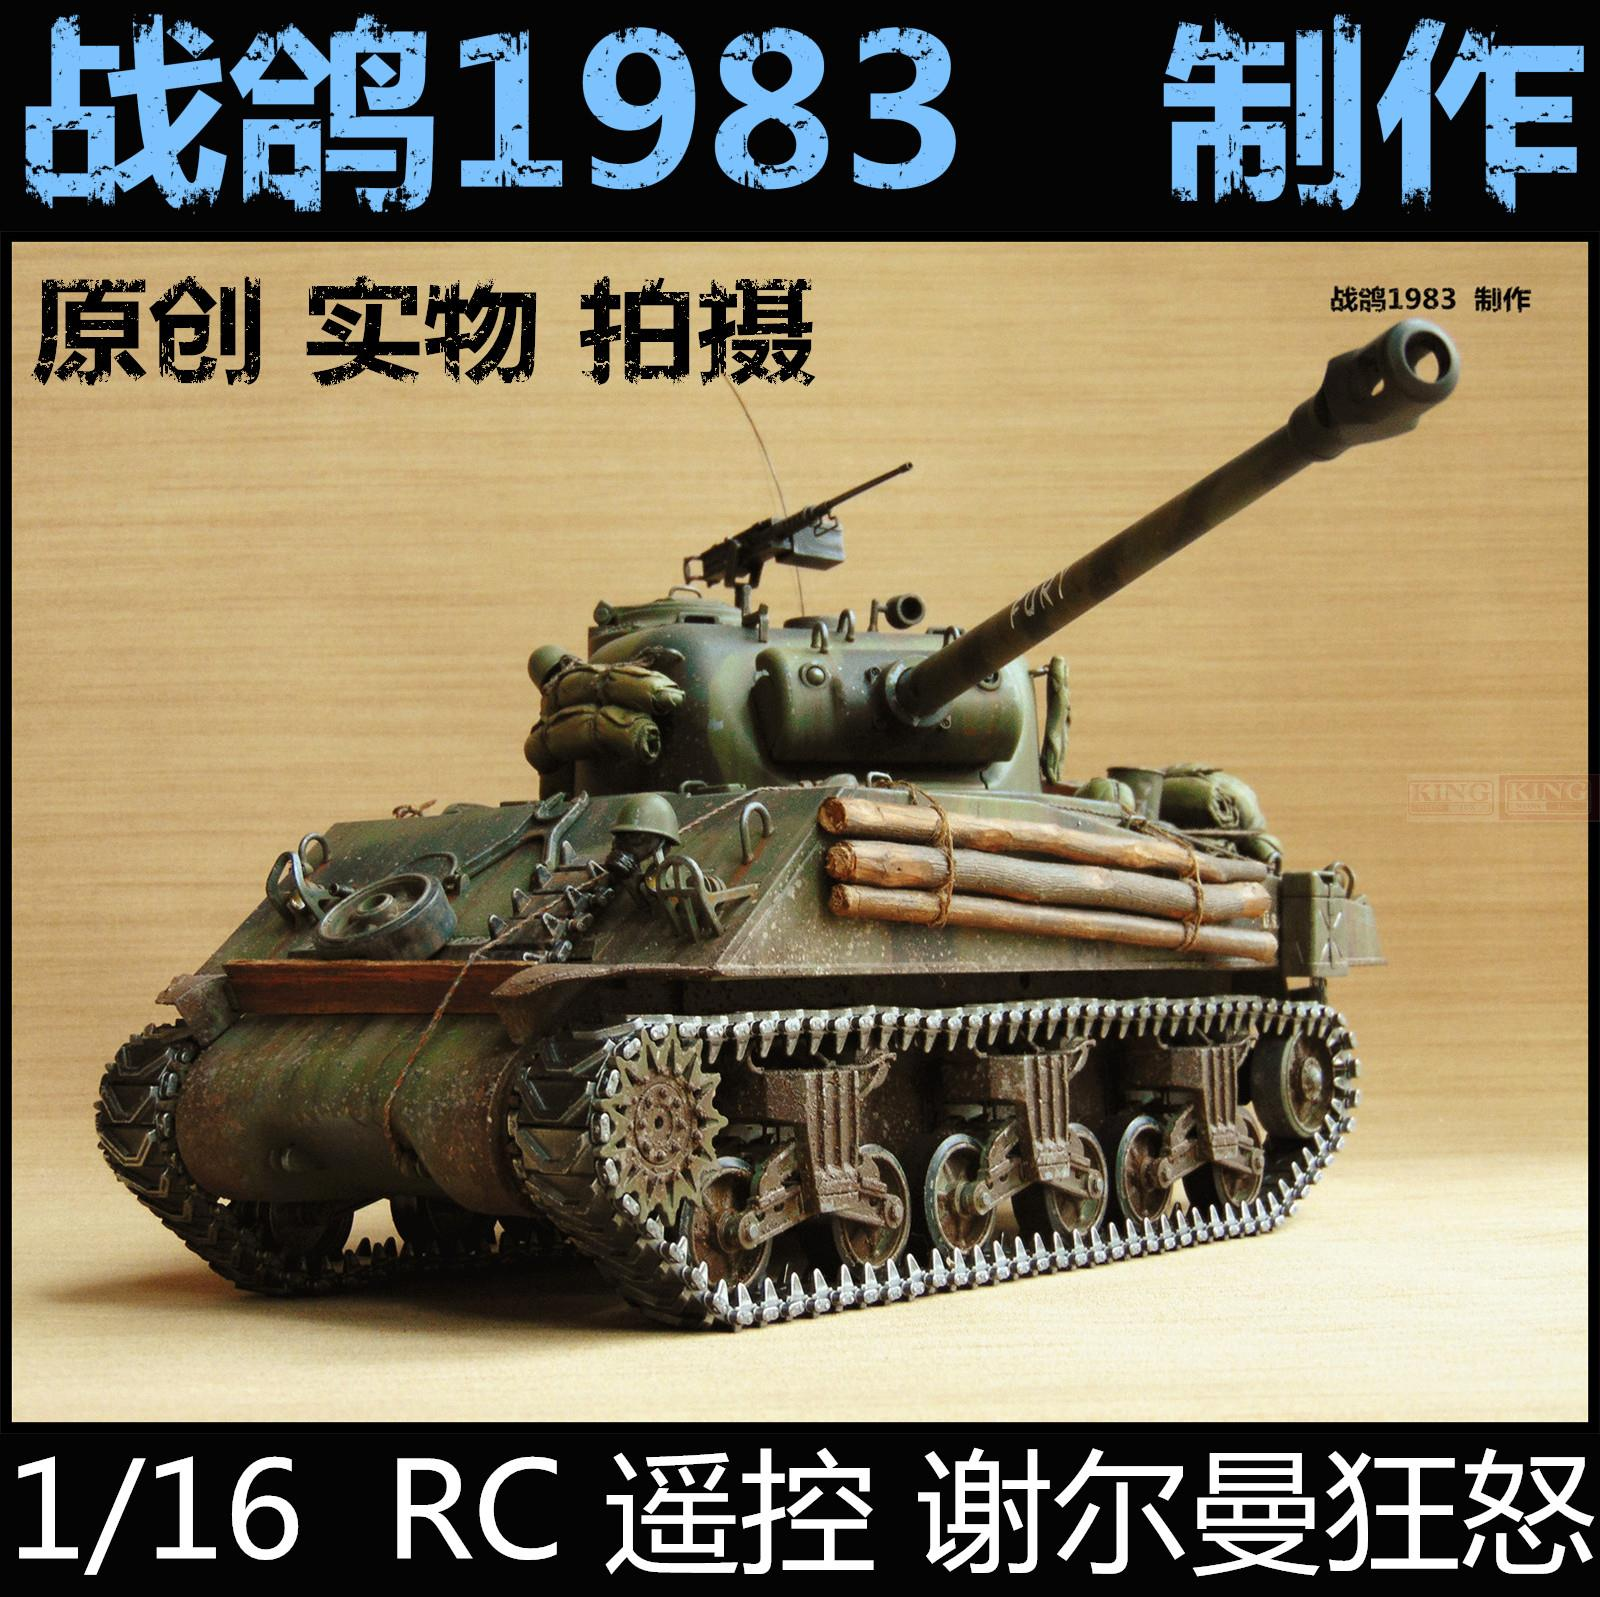 KNL HOBBY Heng Long, 1 / 16RC Remote Sherman Tank model rage OEM coating of paint to do the old heng long